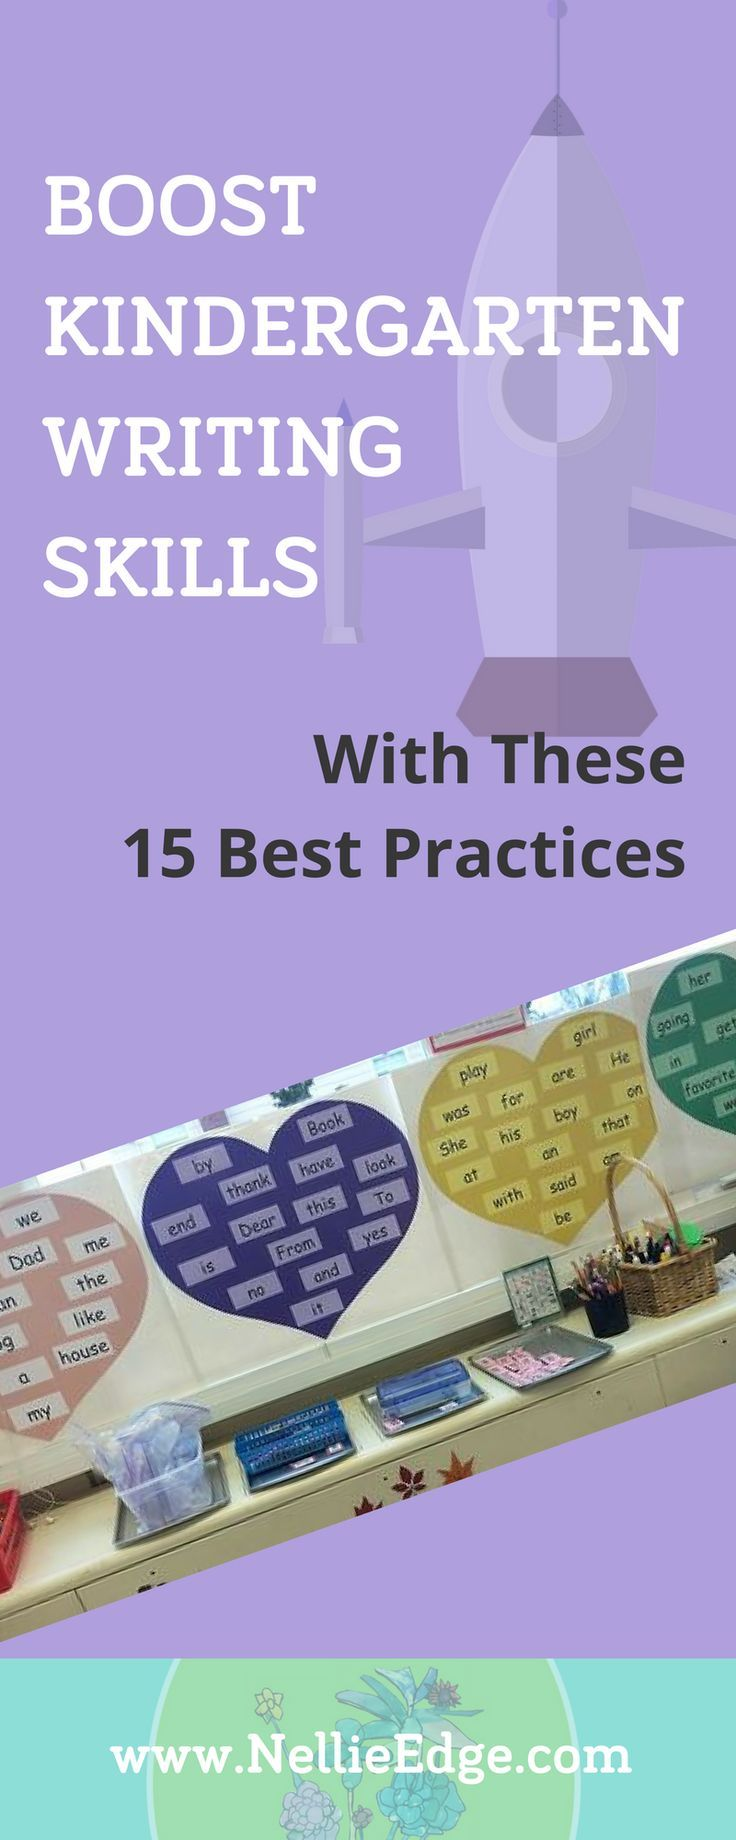 "Boost Kindergarten Writing Skills with These 15 Best Practices: Start with these 15 best practices for kindergarten writing. Fluency with meaningful sight word sentences (we call them ""heart word"" sentences) is vital to kindergarten writing workshop success. Have high expectations. Give students crystal-clear learning targets. Use authentic kindergarten-friendly center activities. Learn more at http://nellieedge.com/weekly-focus/kindergartners-writing-proficiency/"